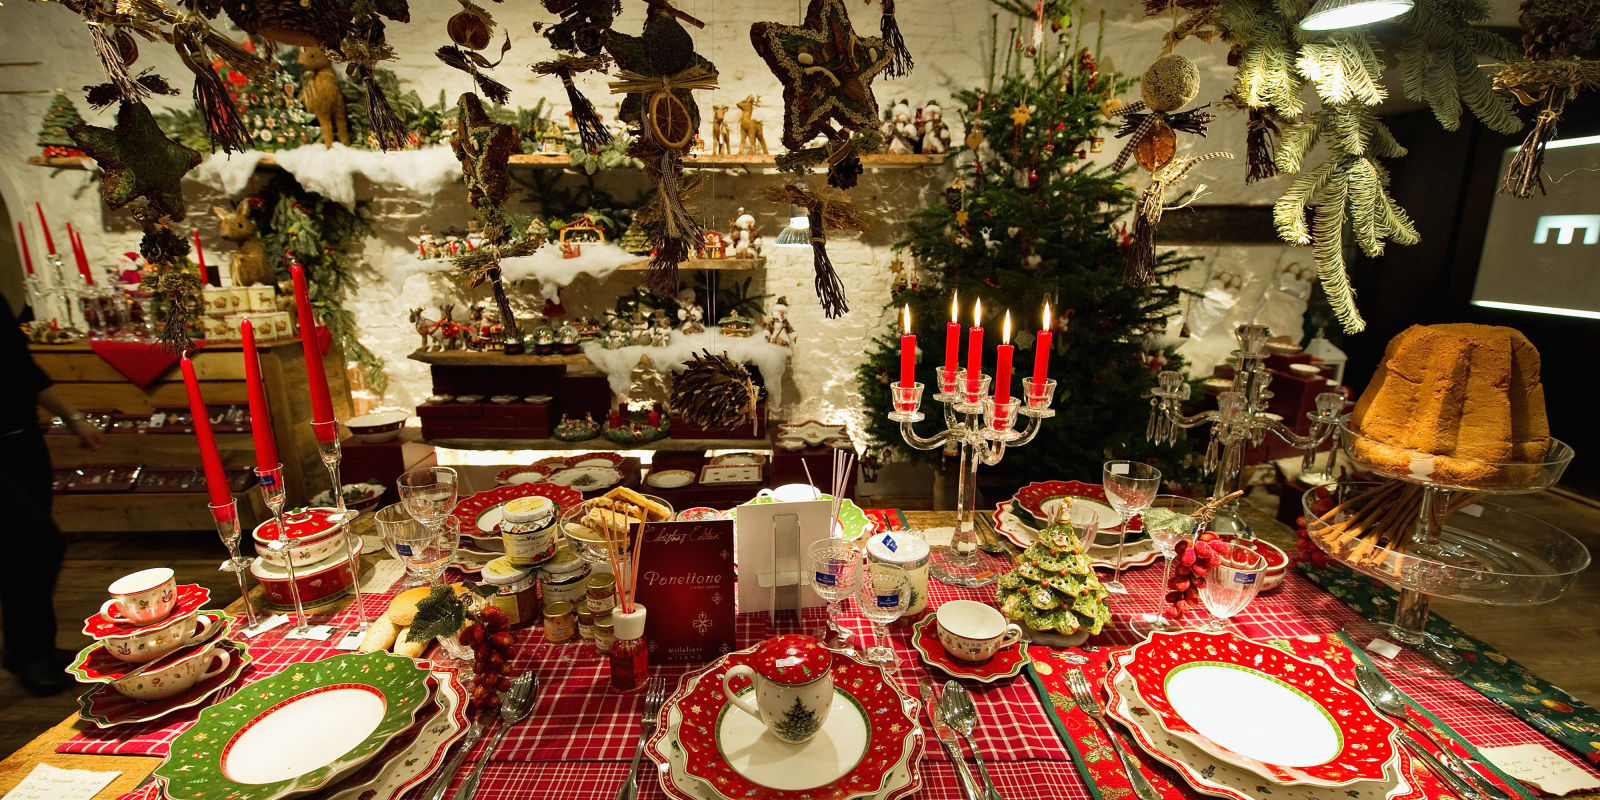 10 Christmas Table Settings 2016 Decoration Ideas For